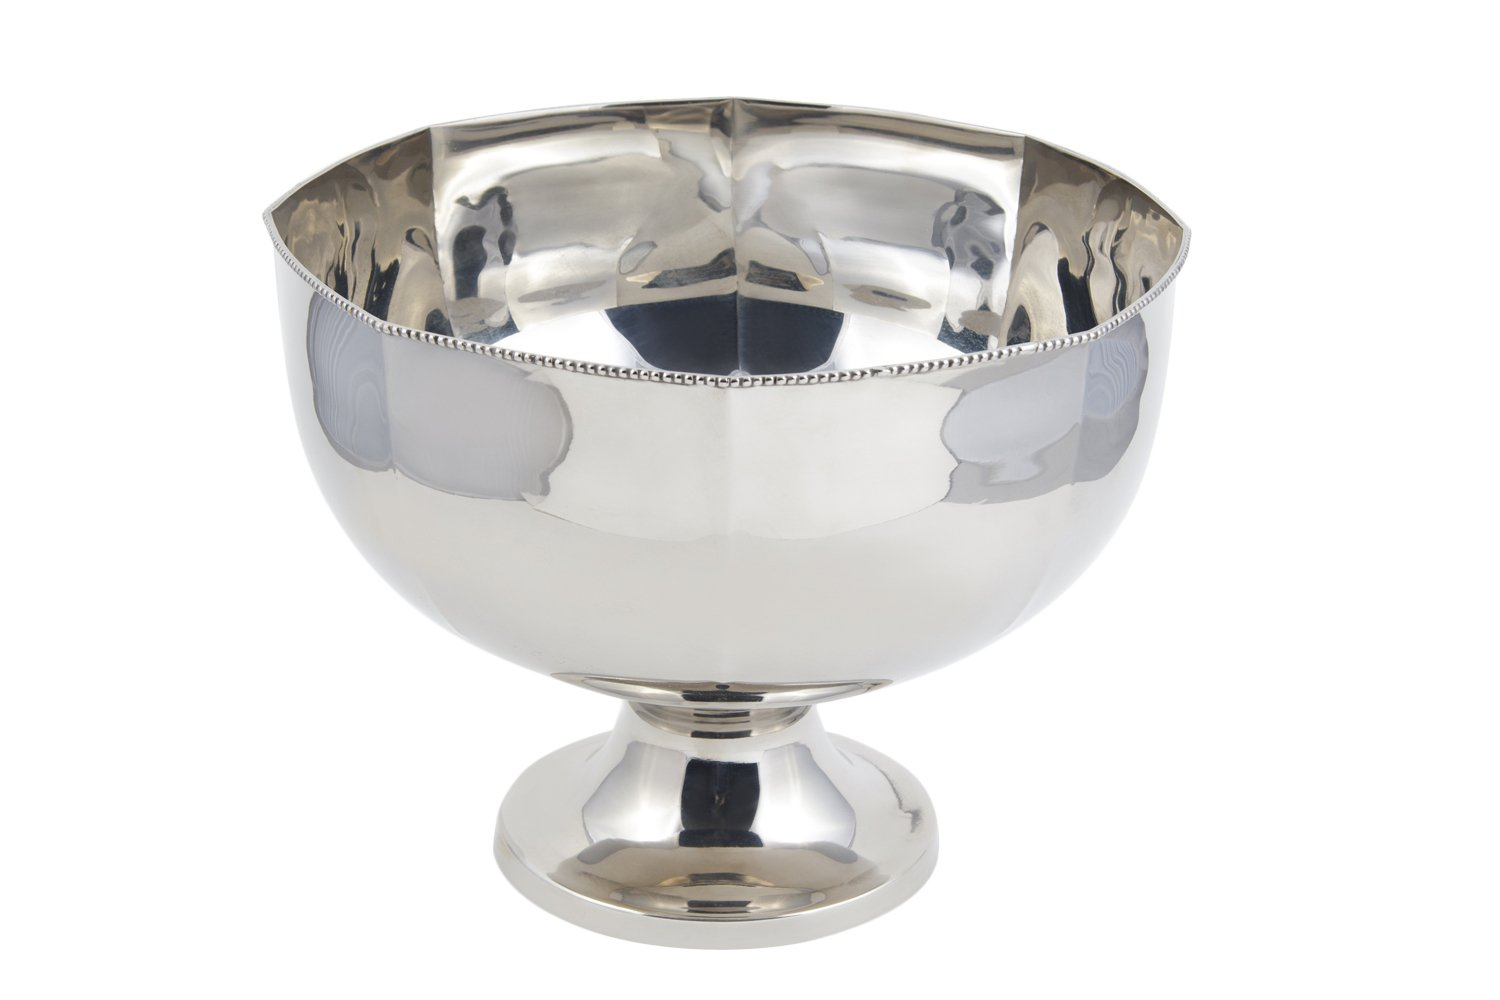 Bon Chef 61322 Stainless Steel Hollowware Punch Bowl with Pedestal Base, 14'' Diameter